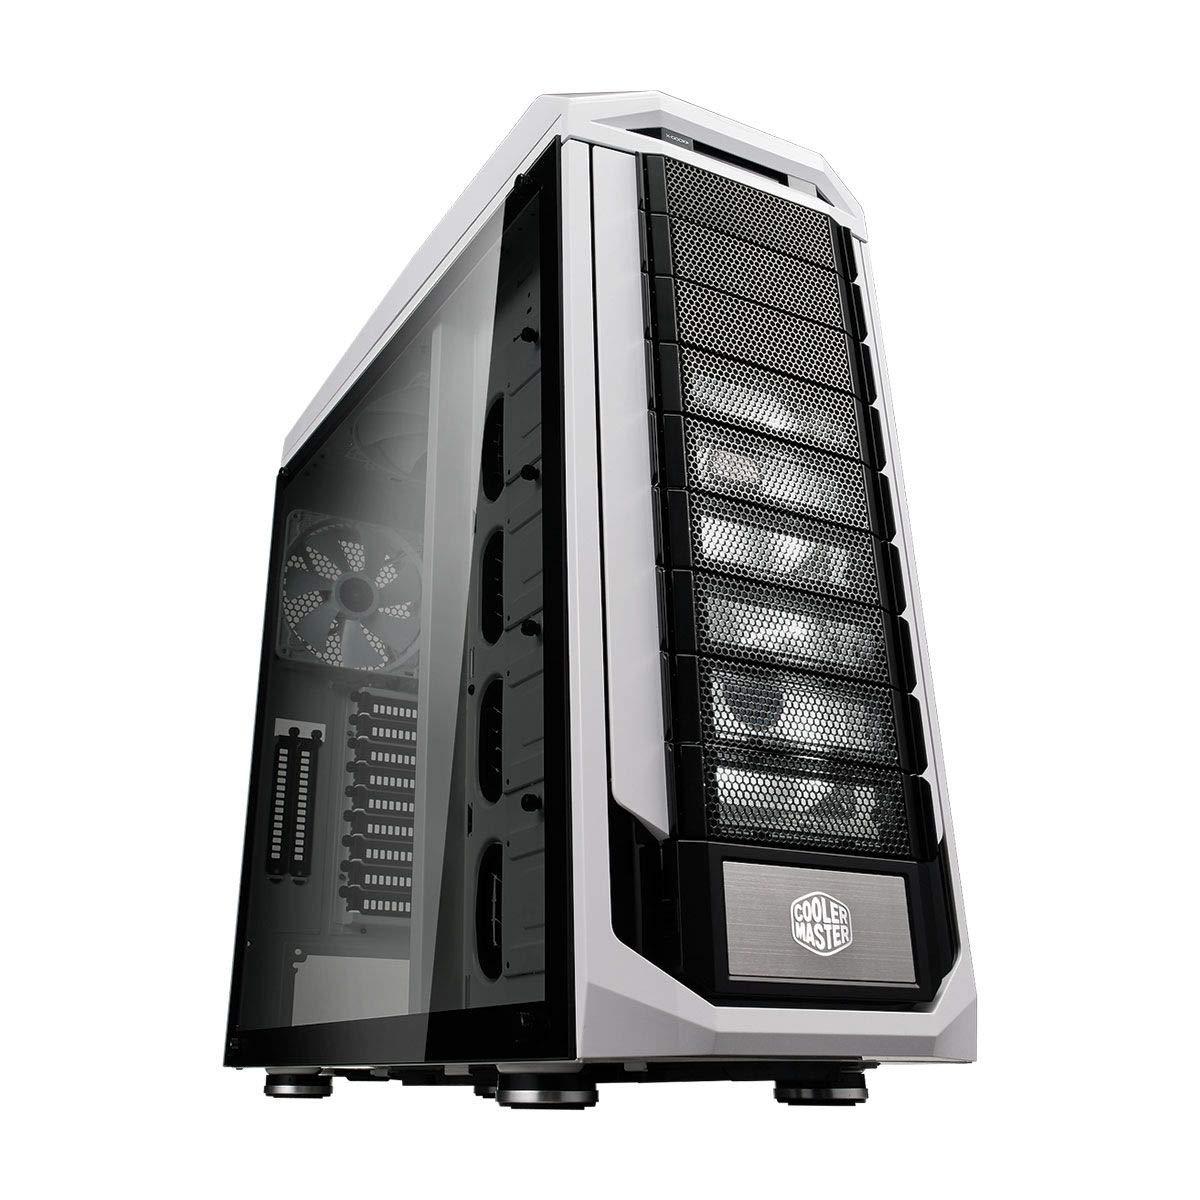 Cooler Master Stryker SE Computer Case 'XL-ATX, E-ATX, ATX, microATX, mini-ITX, Fan Speed Controller, Tempered Glass Side Panel' SGC-5000W-KWN2